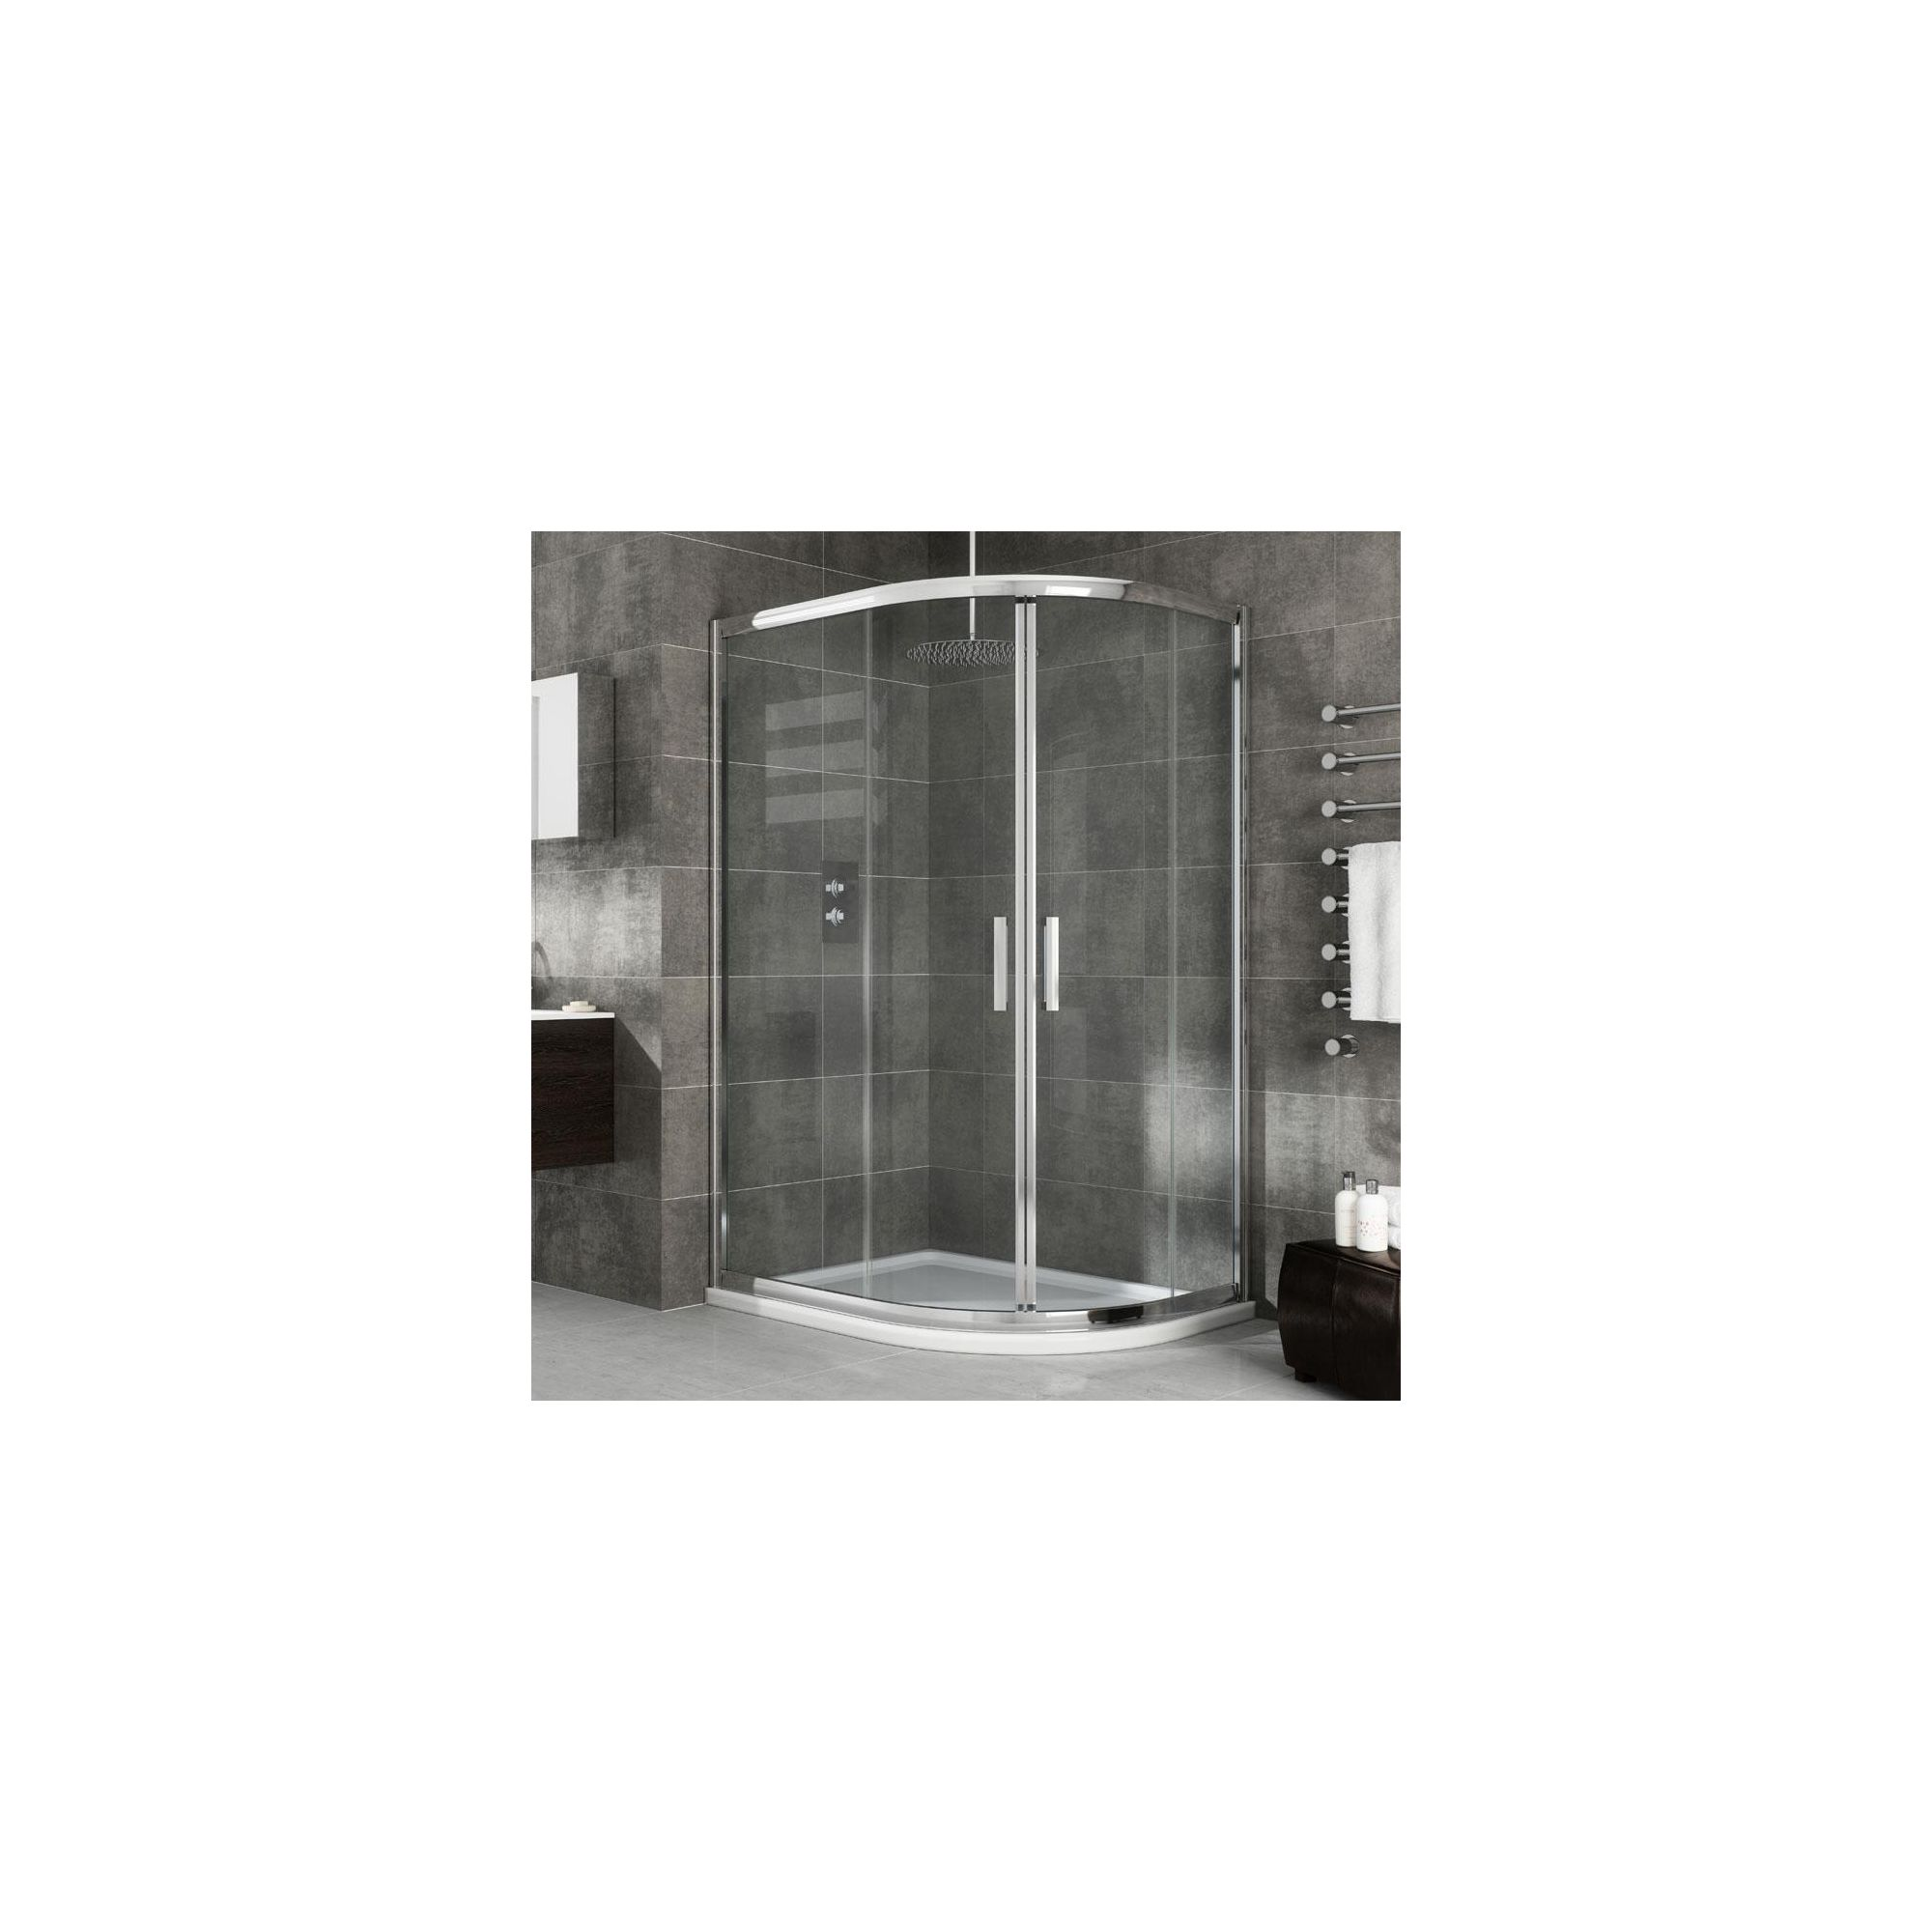 Elemis Eternity Offset Quadrant Shower Enclosure, 1200mm x 900mm, 8mm Glass, Low Profile Tray, Left Handed at Tesco Direct